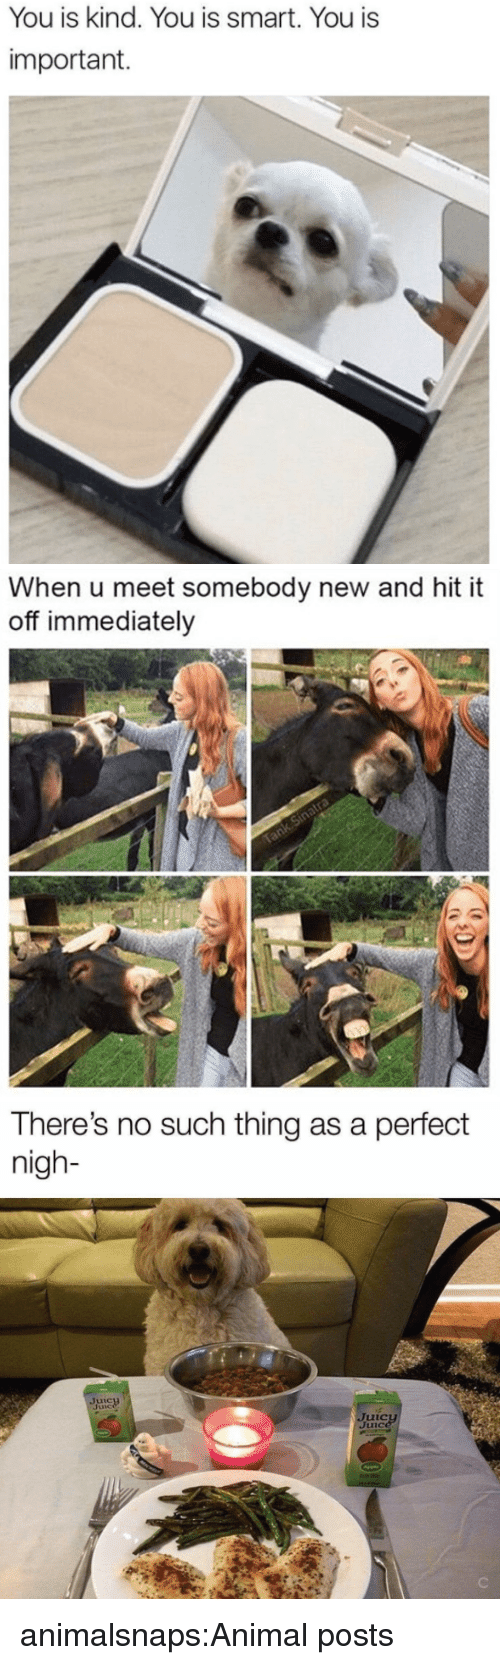 Target, Tumblr, and Animal: You is kind. You is smart. You is  important.   When u meet somebody new and hit it  off immediately   There's no such thing as a perfect  nigh- animalsnaps:Animal posts